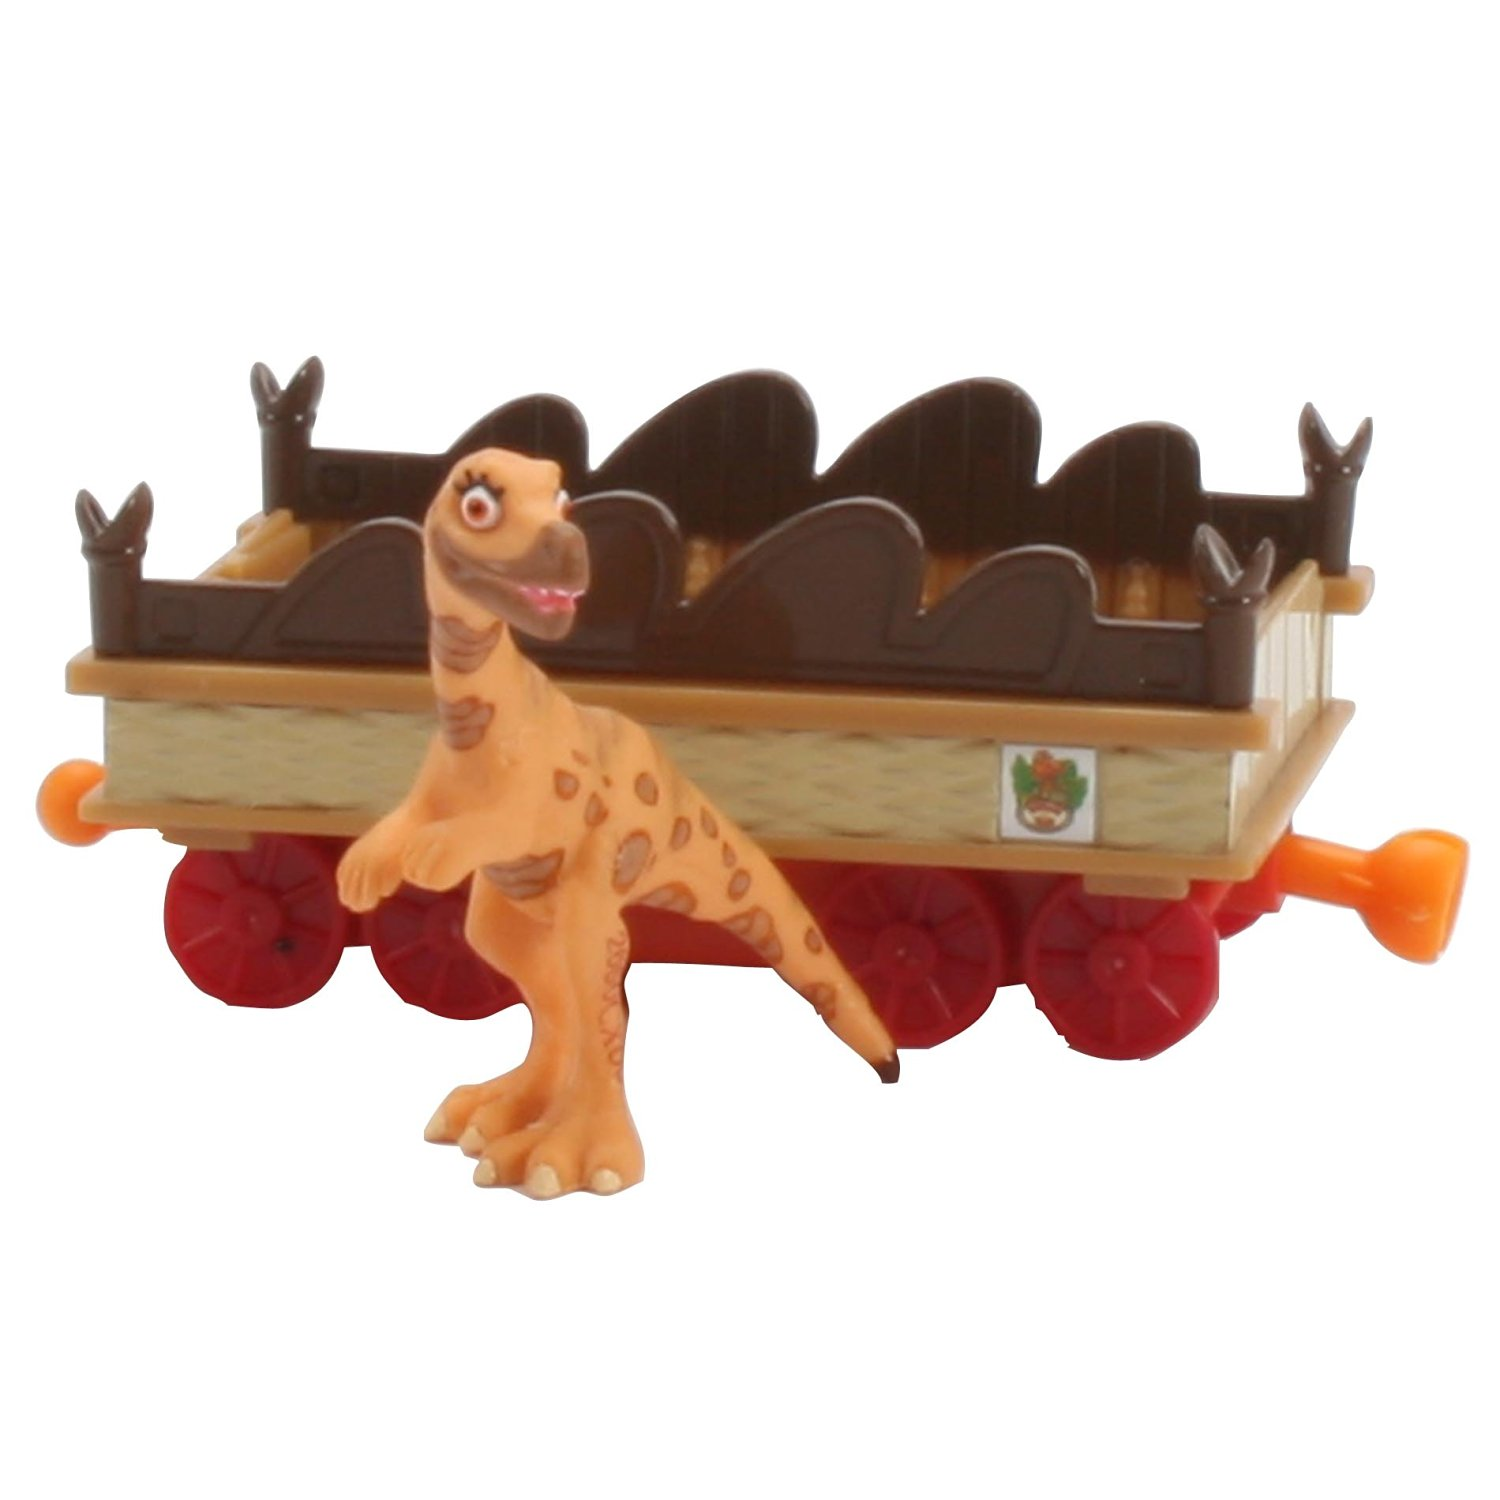 Learning Curve Dinosaur Train Collectible Dinosaur With Train Car: My Friends Are Bipeds: Leslie